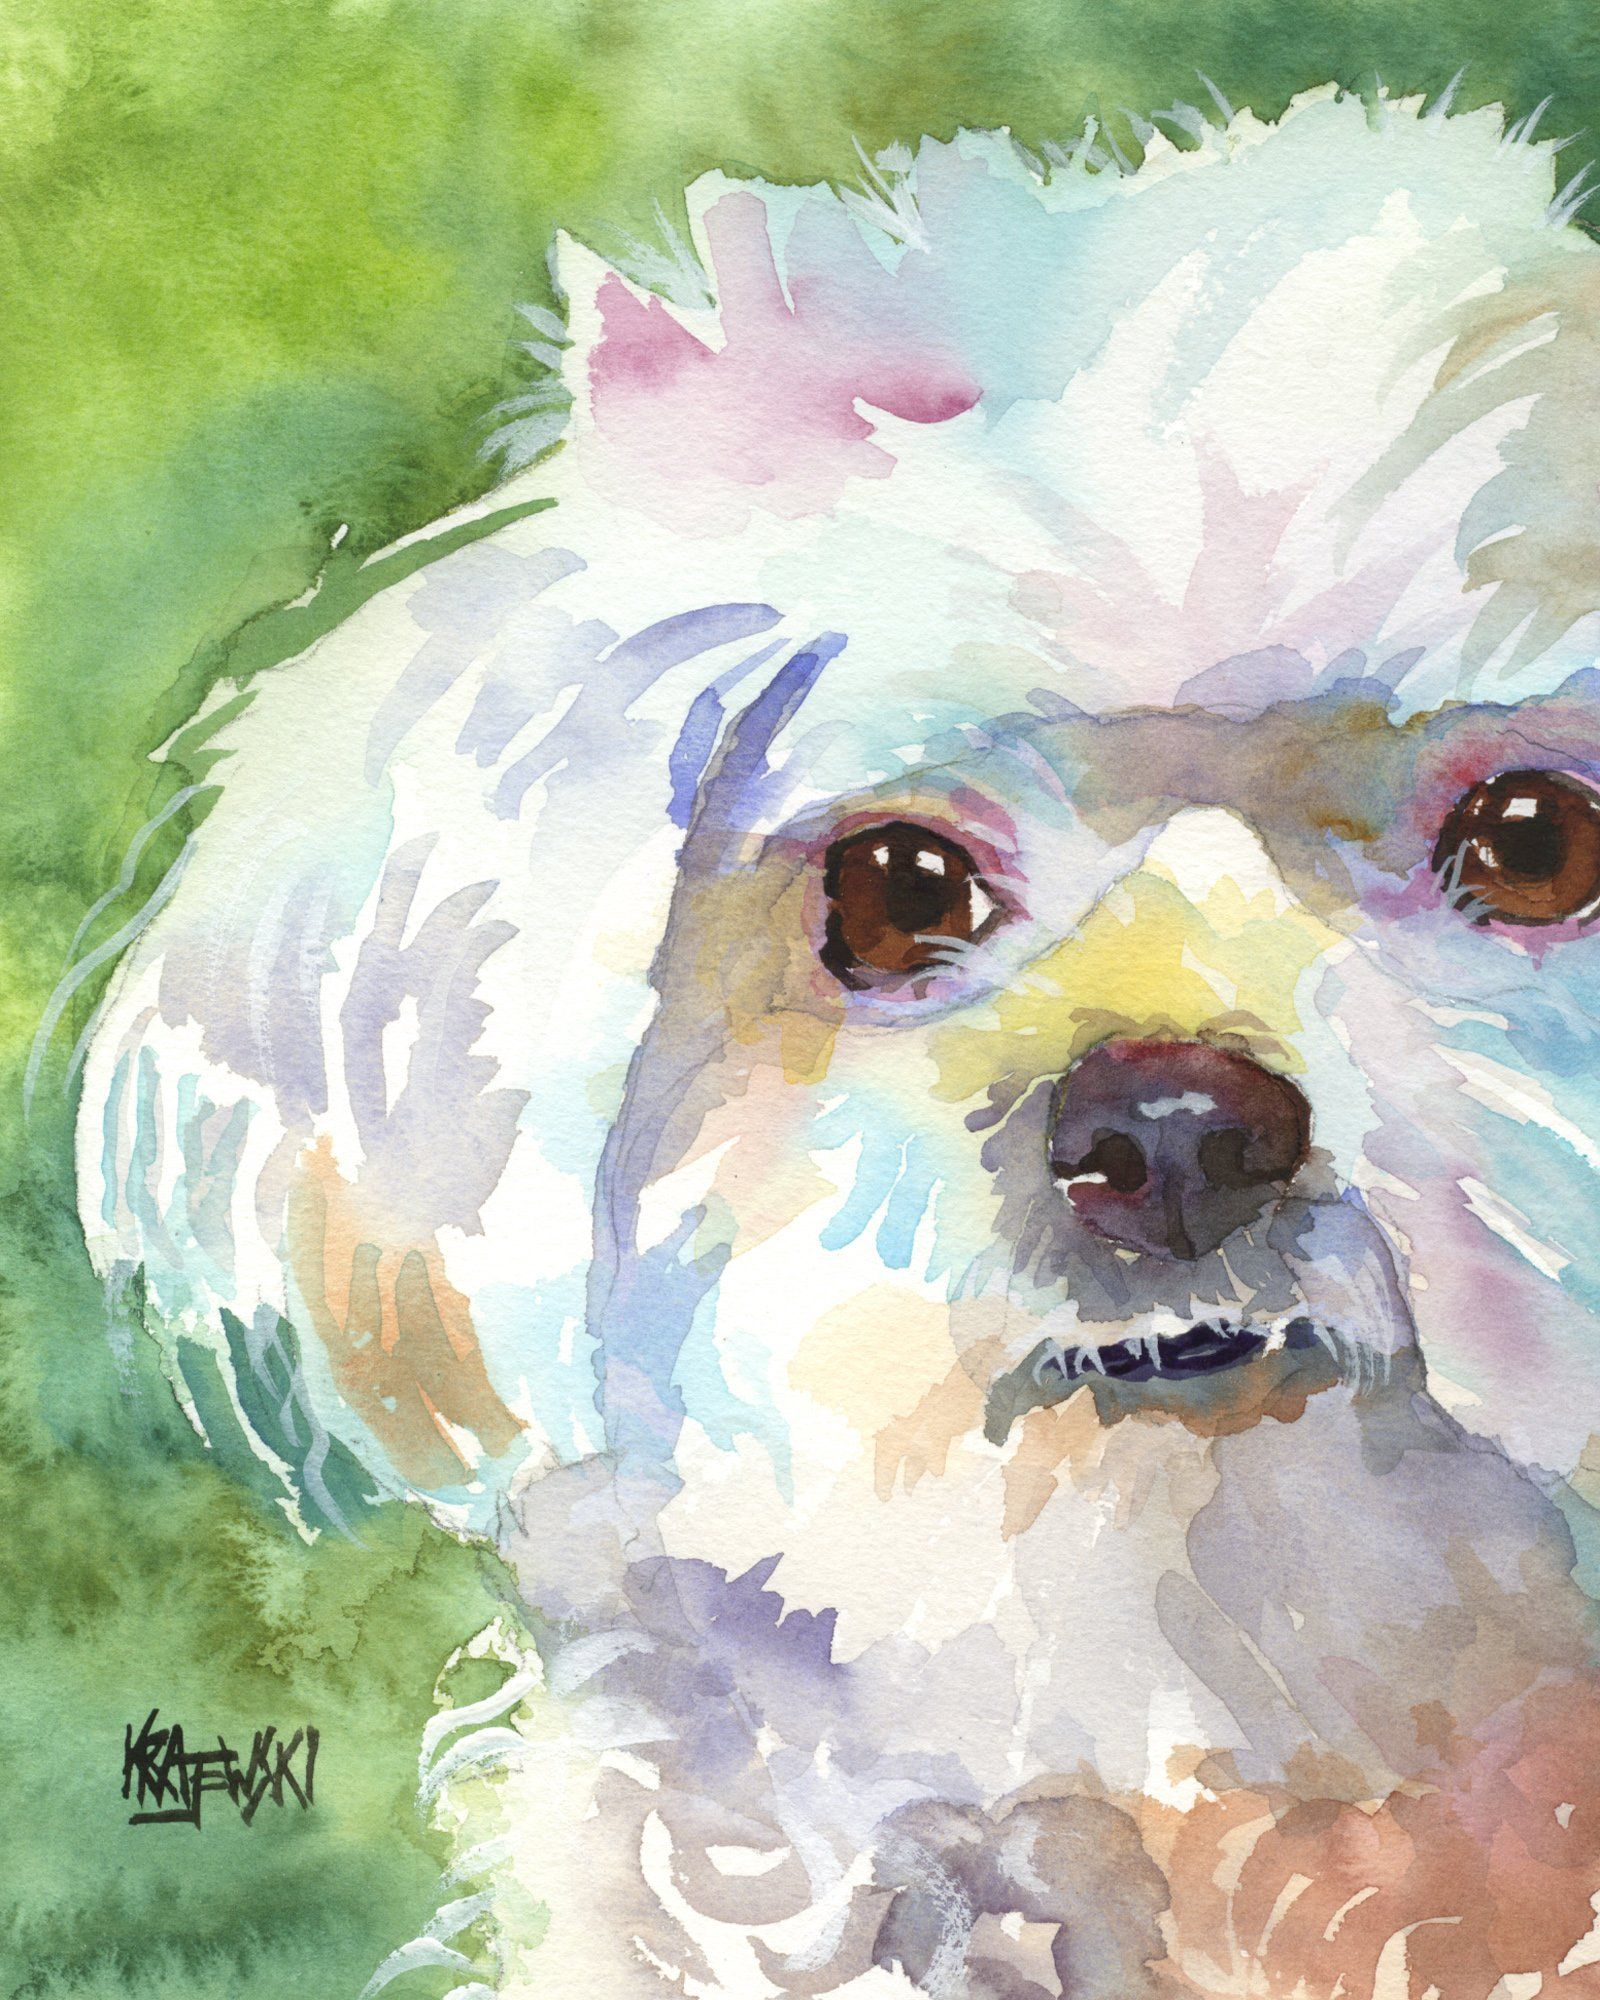 Maltese Dog Fine Art Print on 100% Cotton Watercolor Paper. About the Print: This Maltese Dog open edition art print is from an original painting by Ron Krajewski. Art print is available in 8x10 or 11x14 inches and is printed on museum quality heavy weight textured fine art paper. Quality fine art prints on quality heavy-weight 100% cotton mould-made paper, designed for fine art photography and printmaking. Print is hand signed by the artist on the front border. About the Artist: Ron...